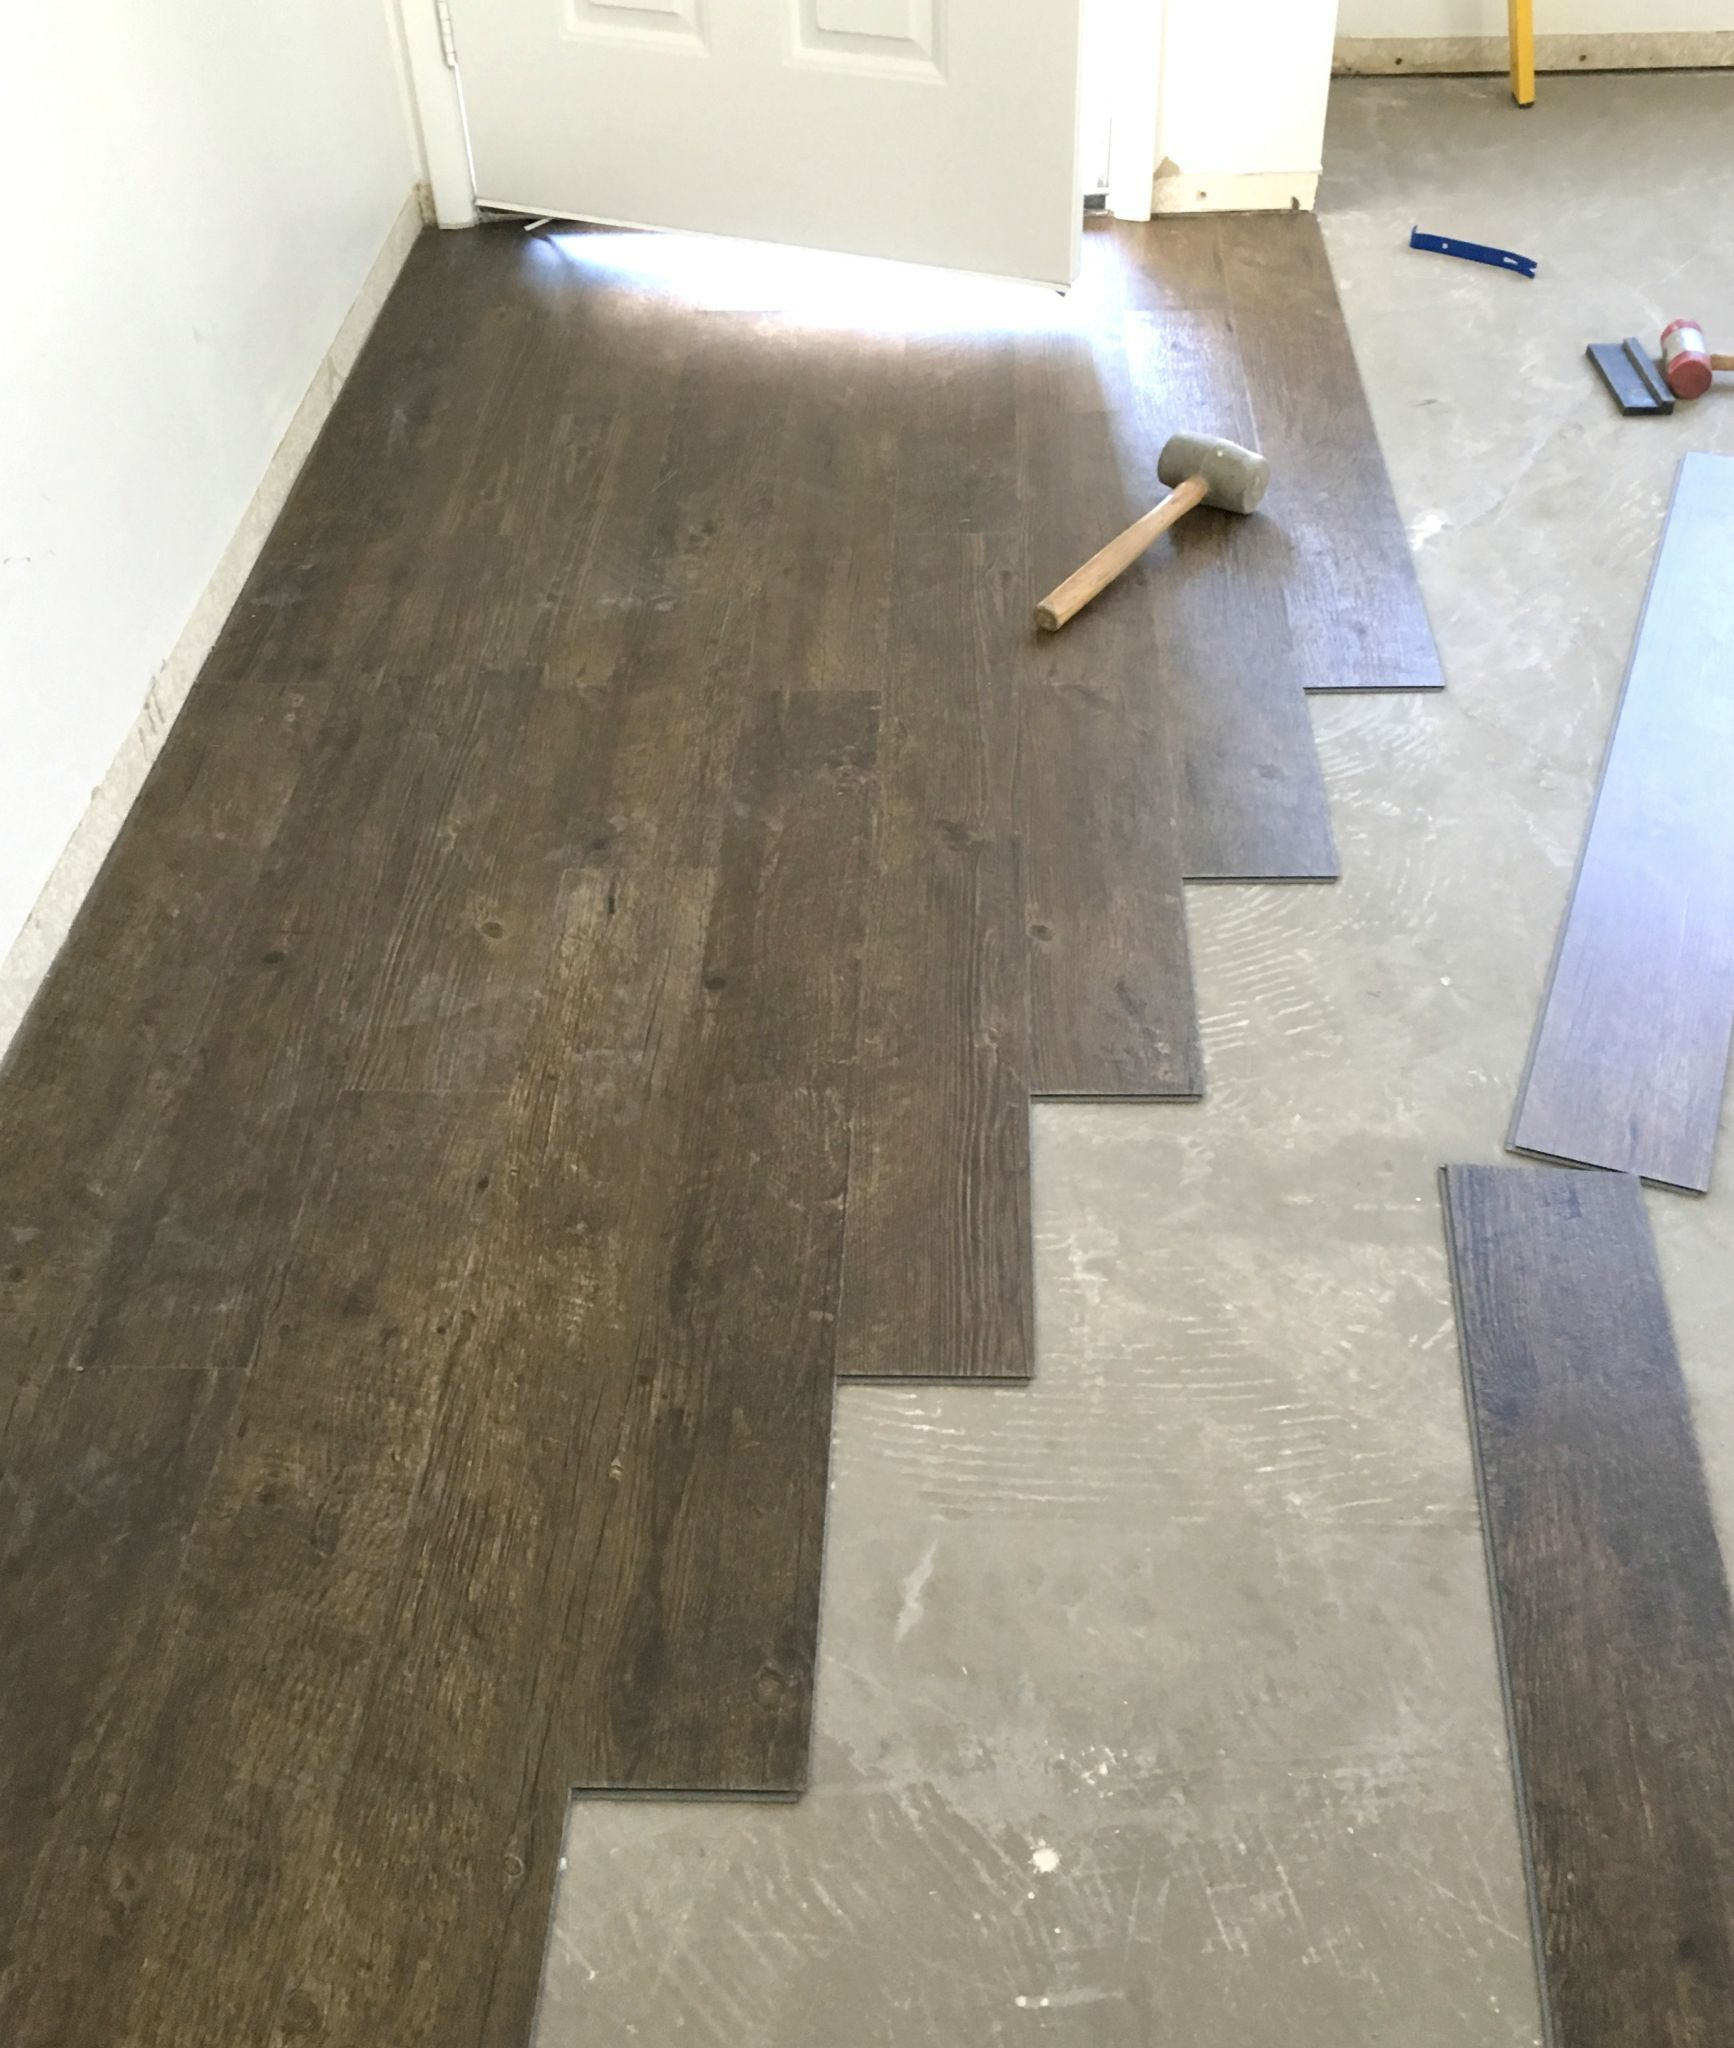 Vinyl Plank Flooring Prep And Installation Build It With Stan Pinterest Plank Basements